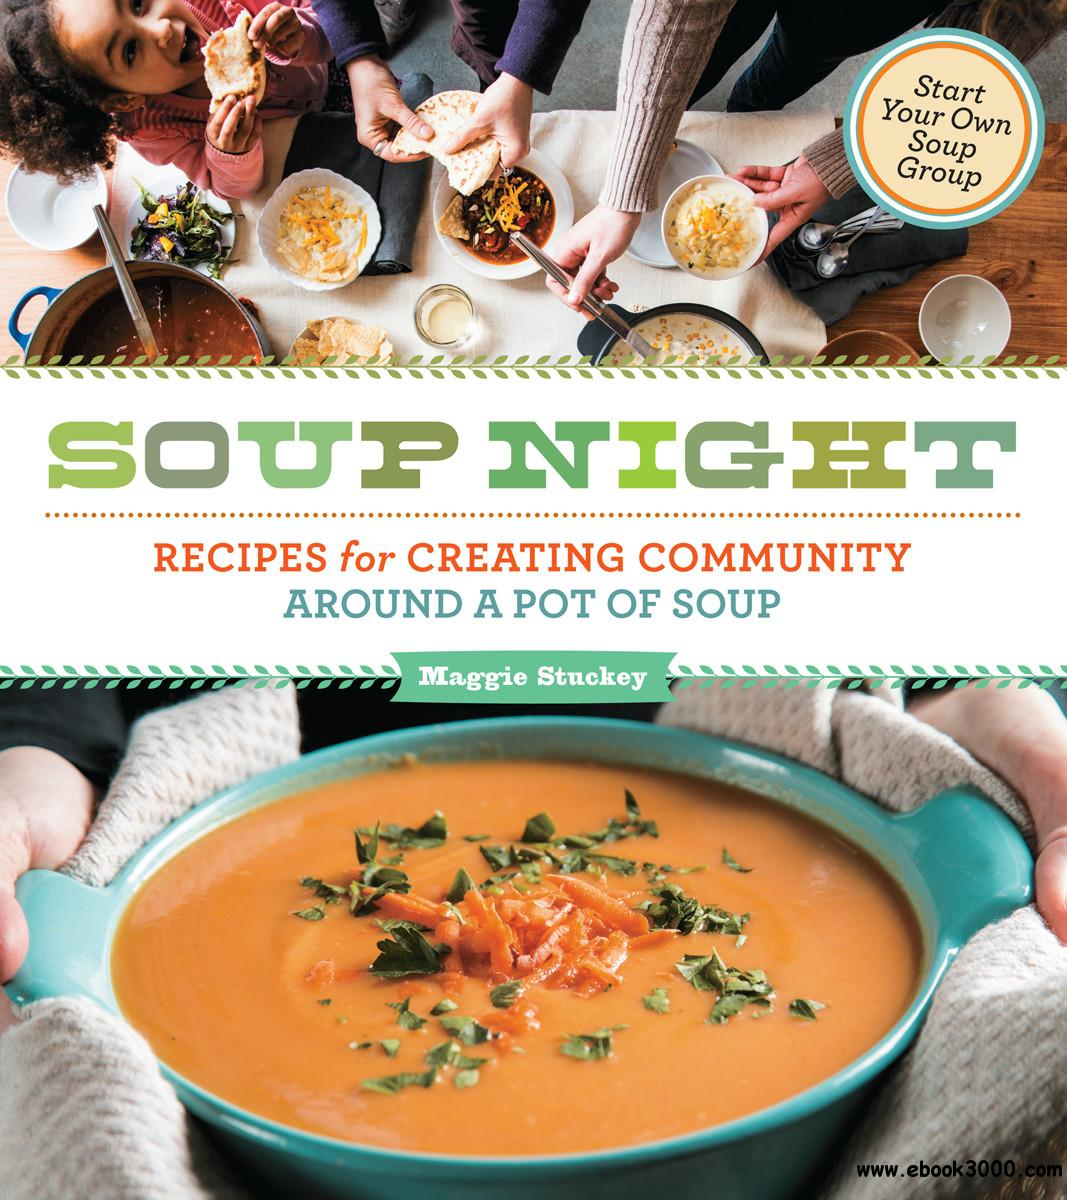 Soup Night: Recipes for Creating Community Around a Pot of Soup free download